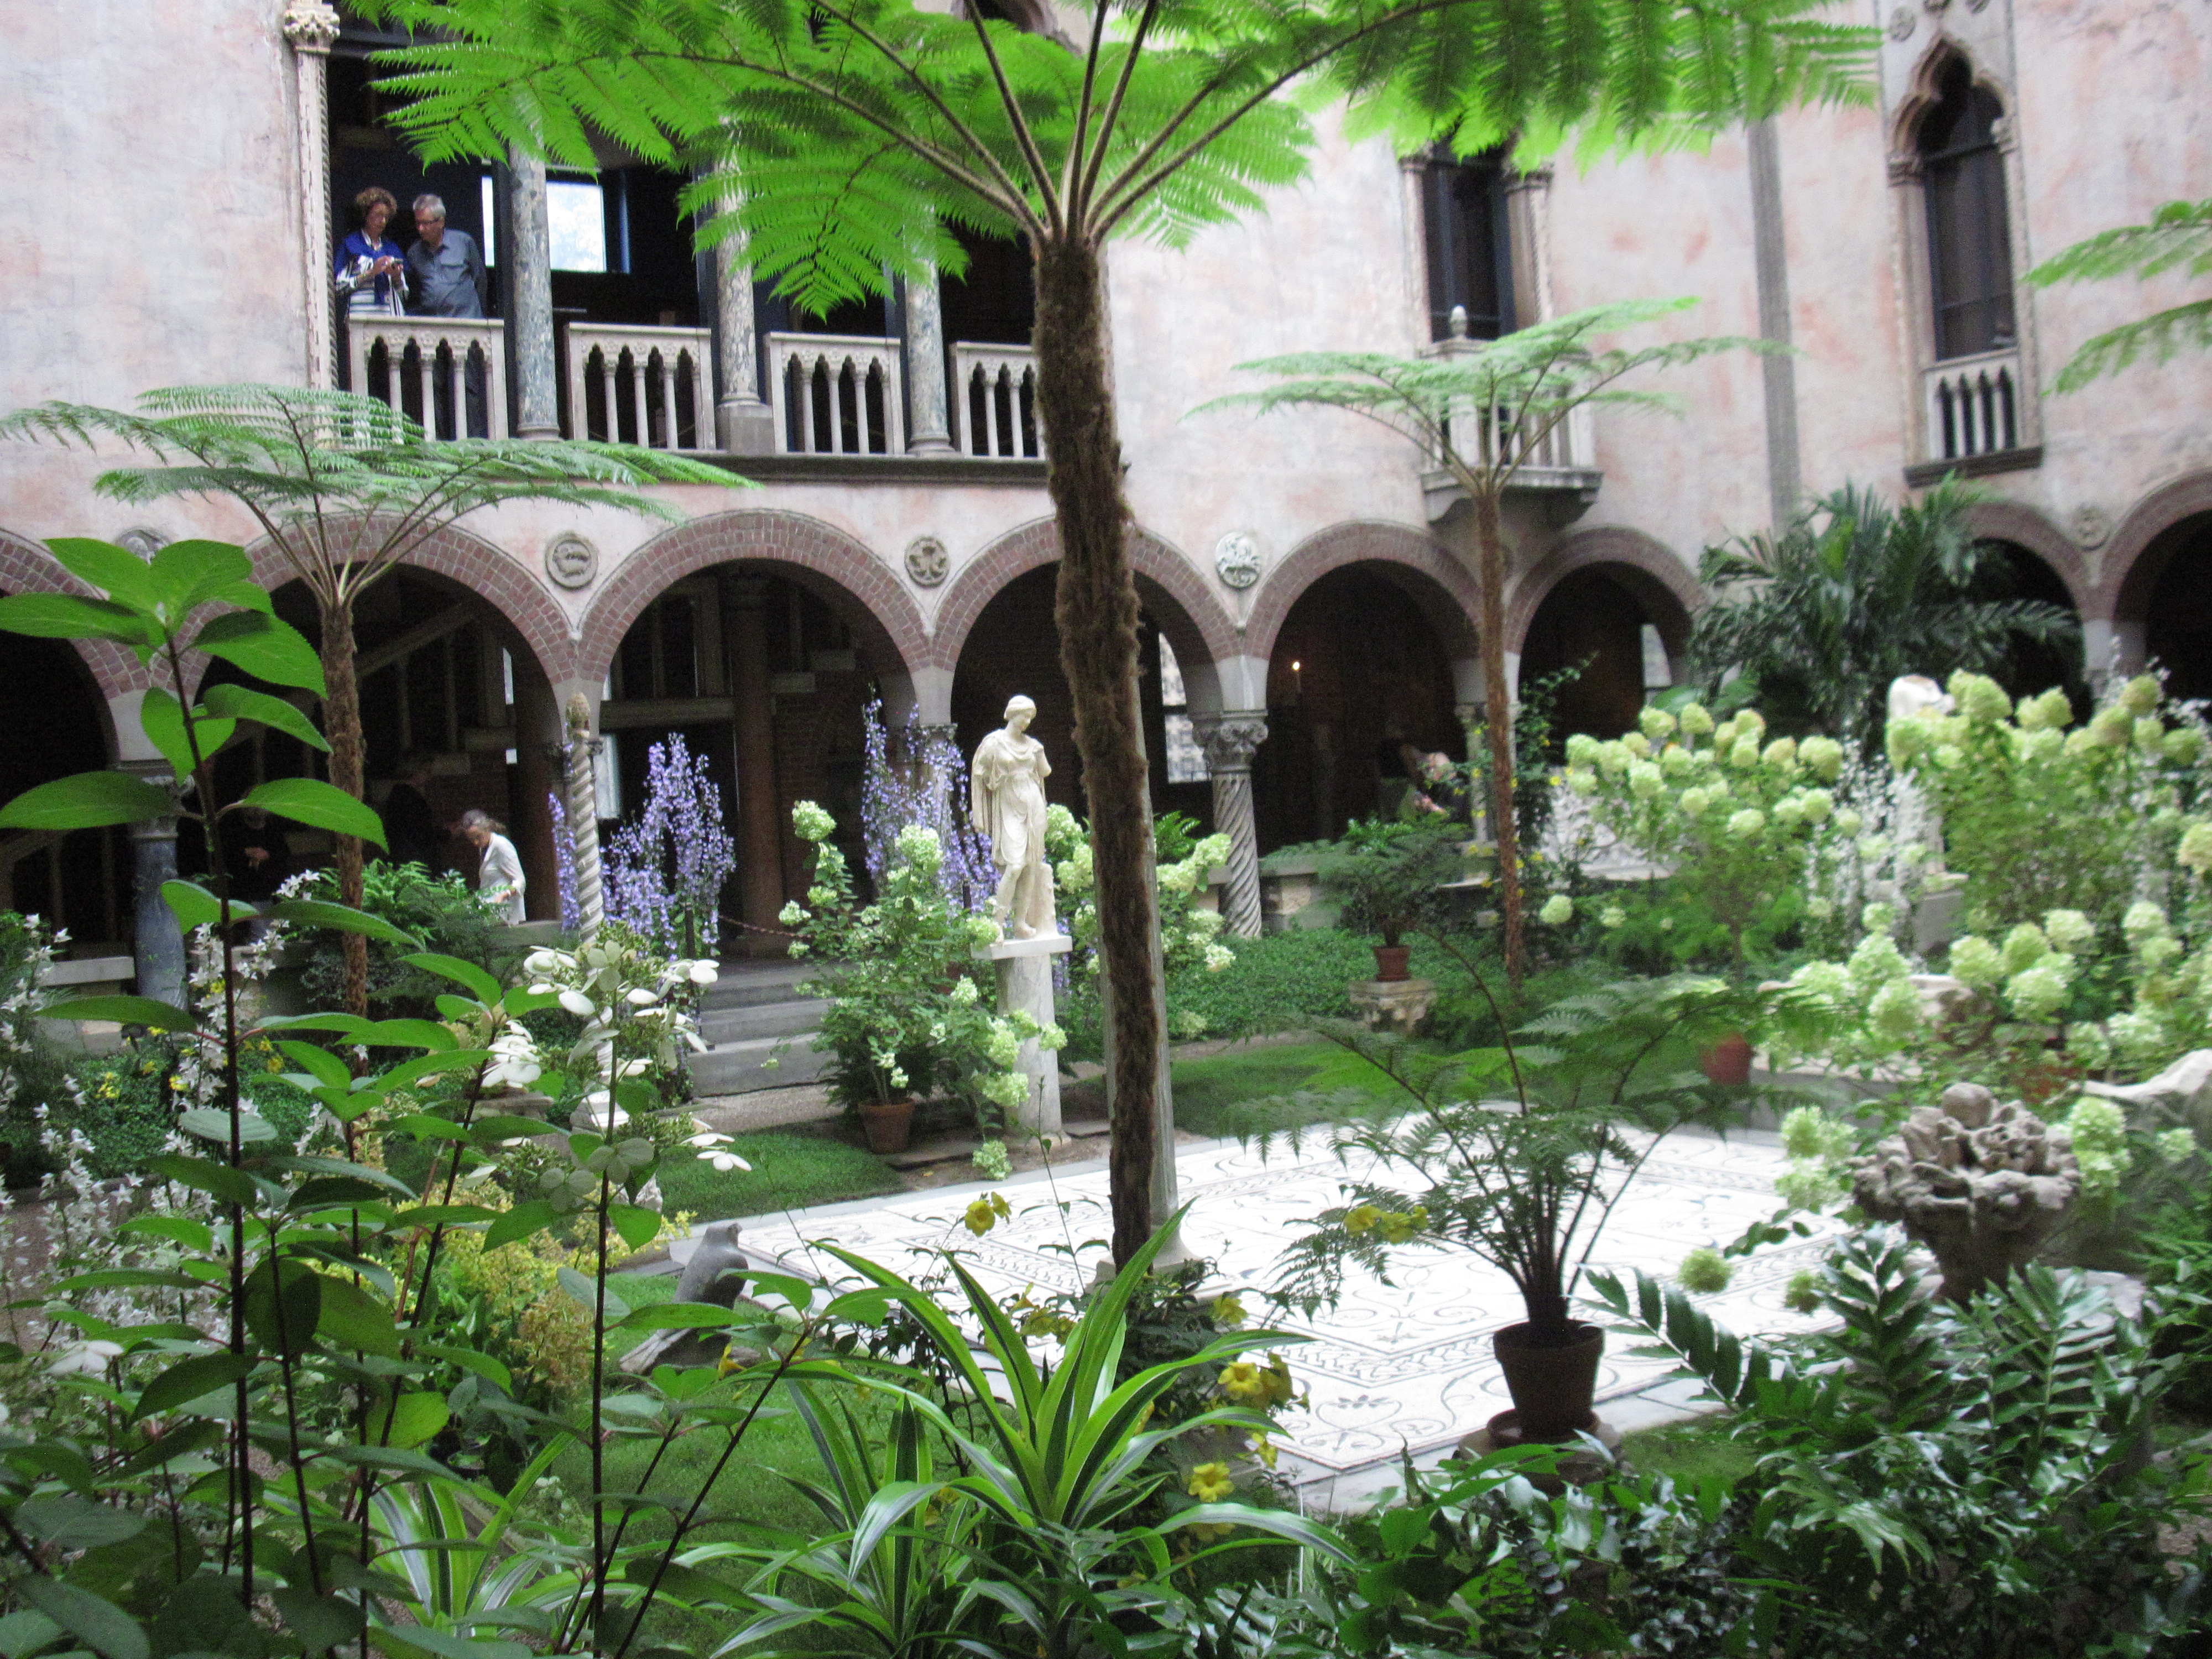 The courtyard of the Isabella Stewart Gardner Museum. Photo by Felibrilu, Flickr, Creative Commons